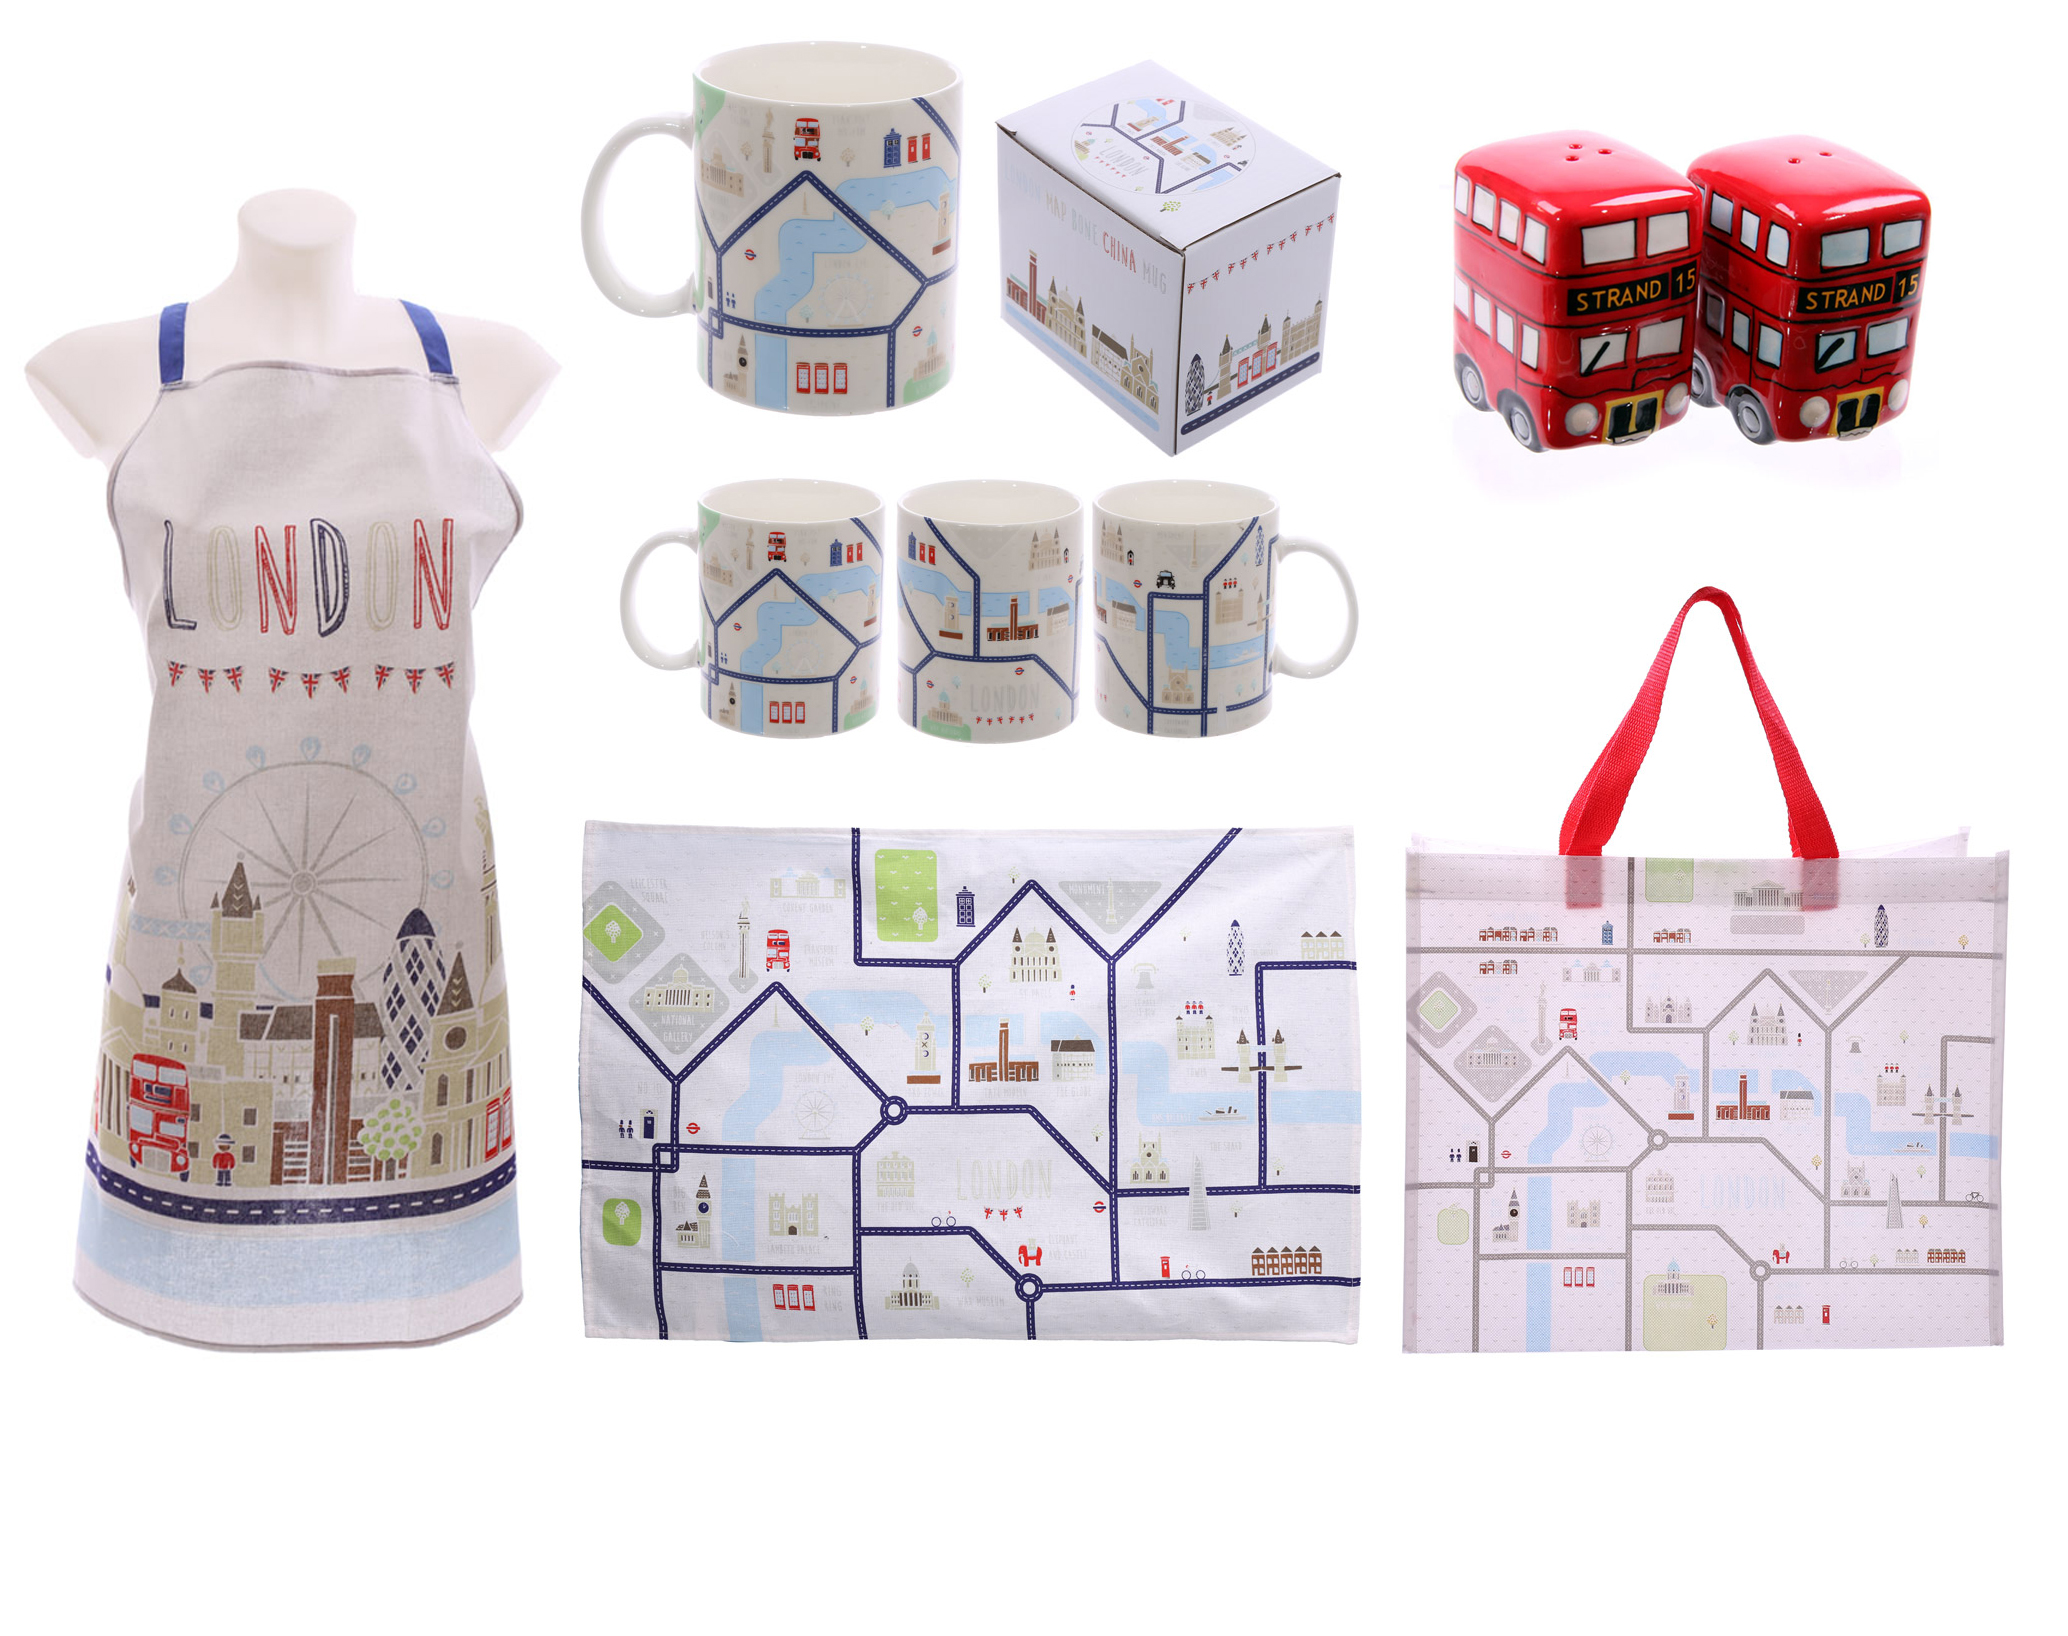 Gb London Map Kitchen Gift Set For La S Ideal Christmas Or Birthday Present